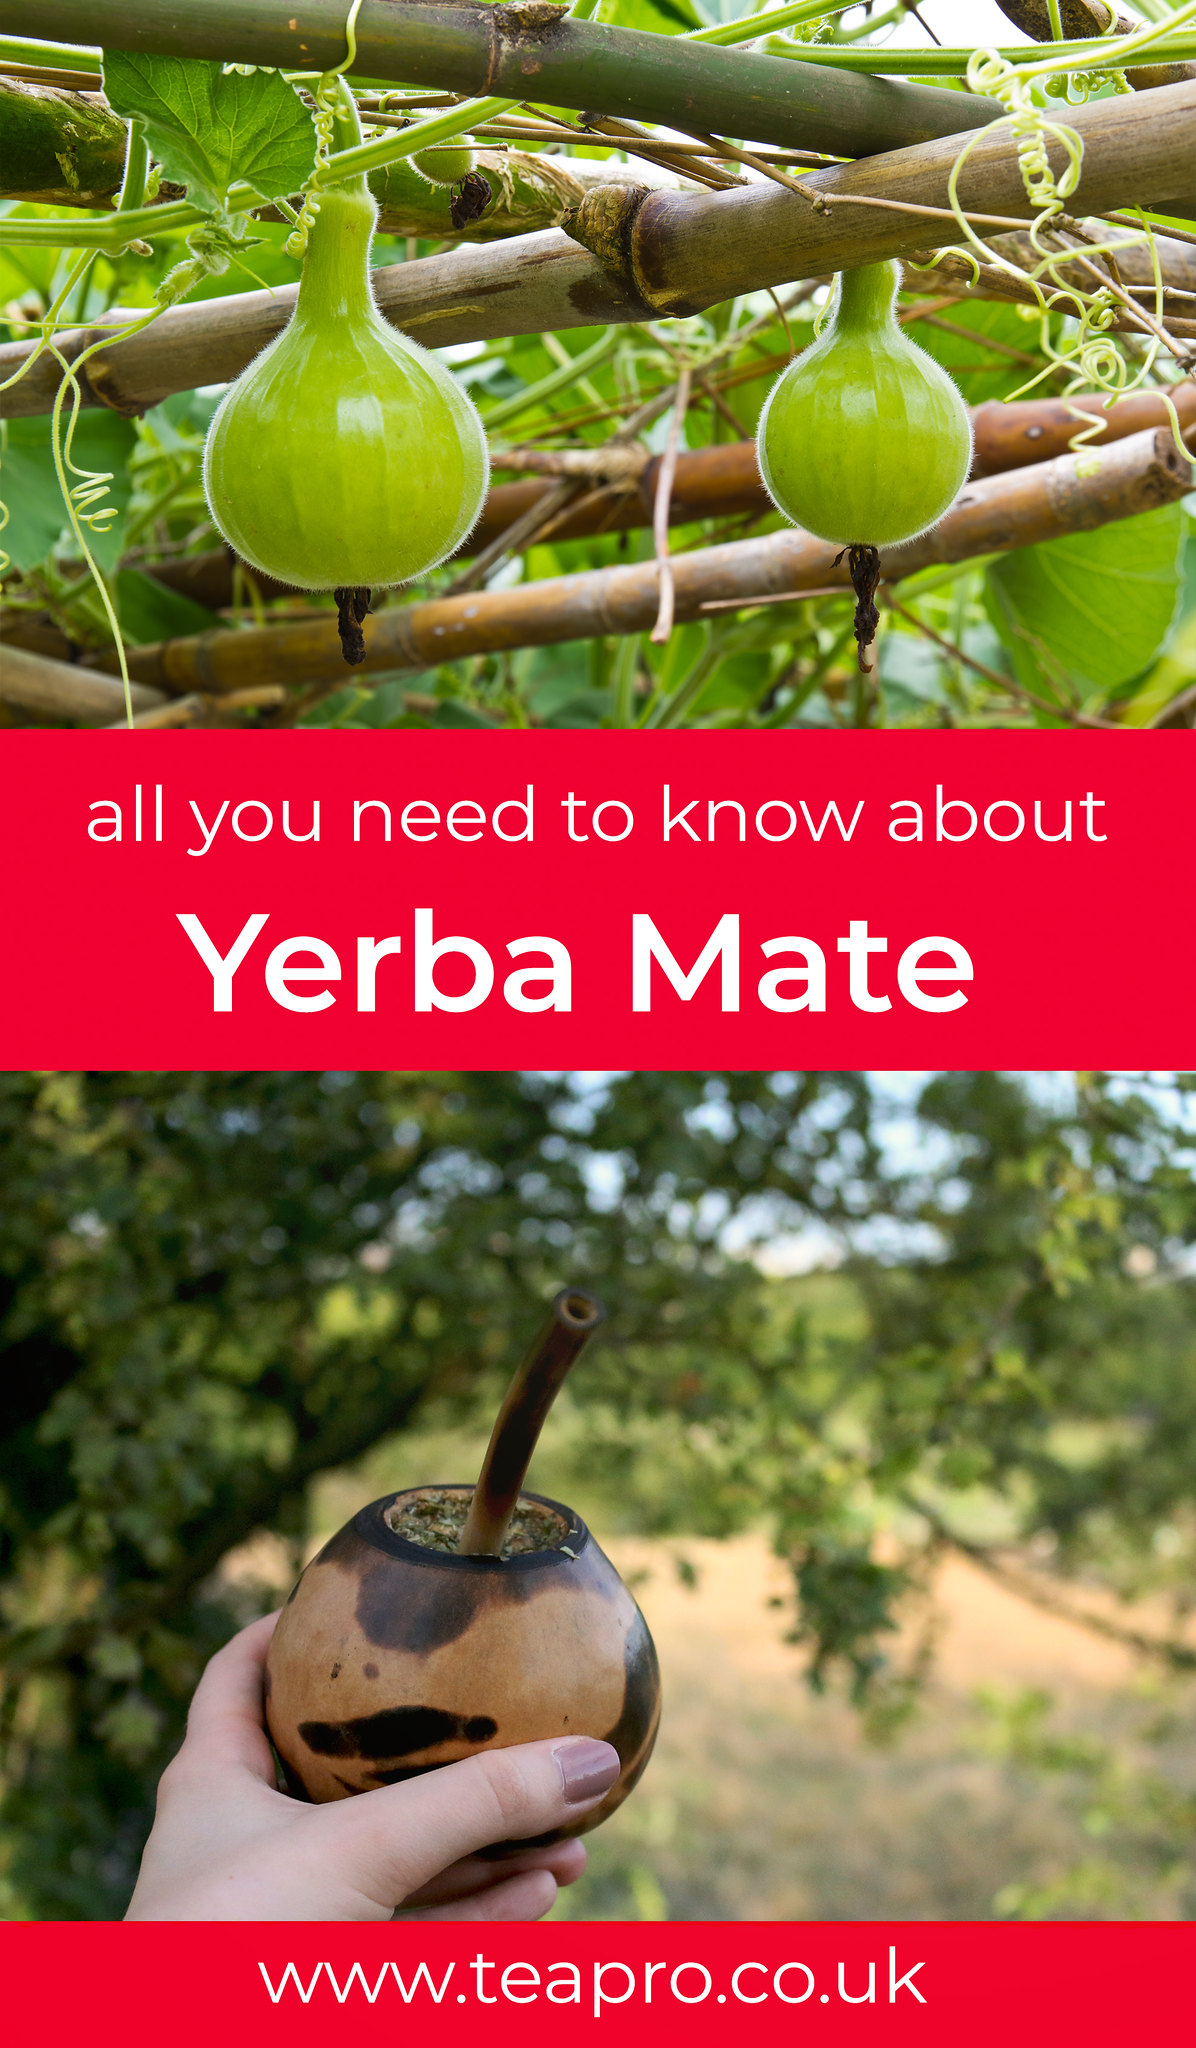 _all-you-need-to-know-about-yerba-mate-pinterest